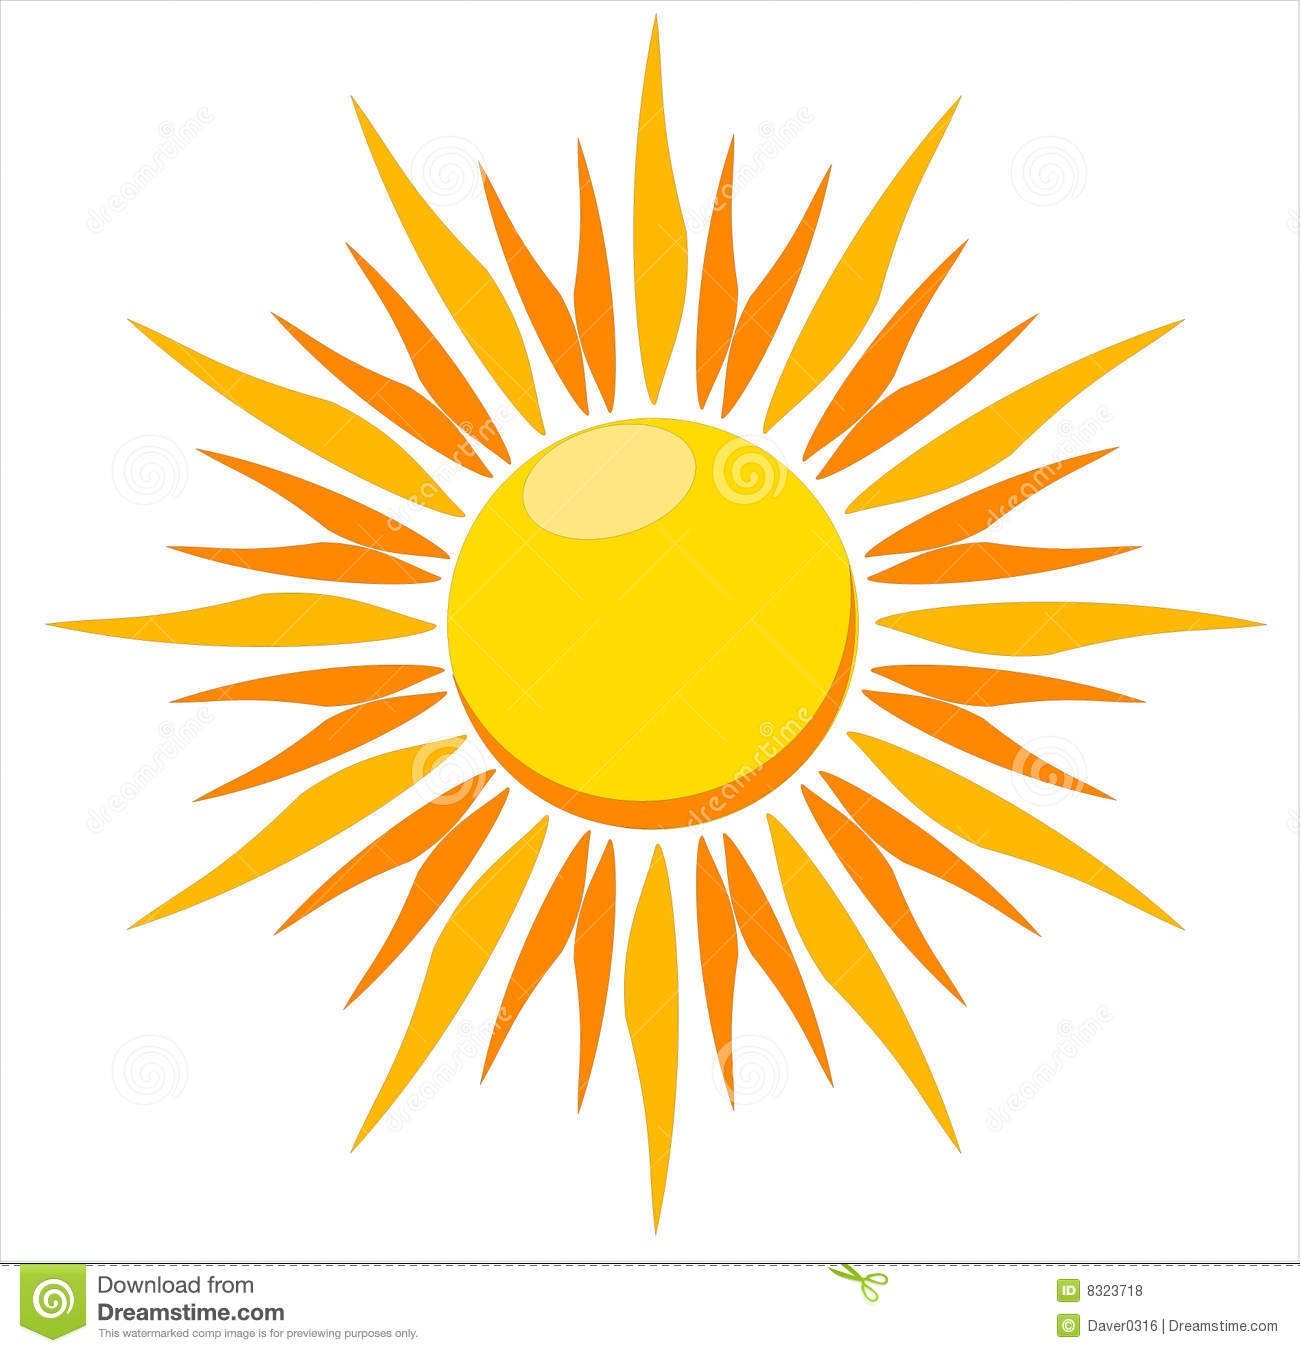 ... Sun Vector Illustration Royalty Free Stock Photos - Image: 8323718: https://www.dreamstime.com/royalty-free-stock-photos-blazing-sun...